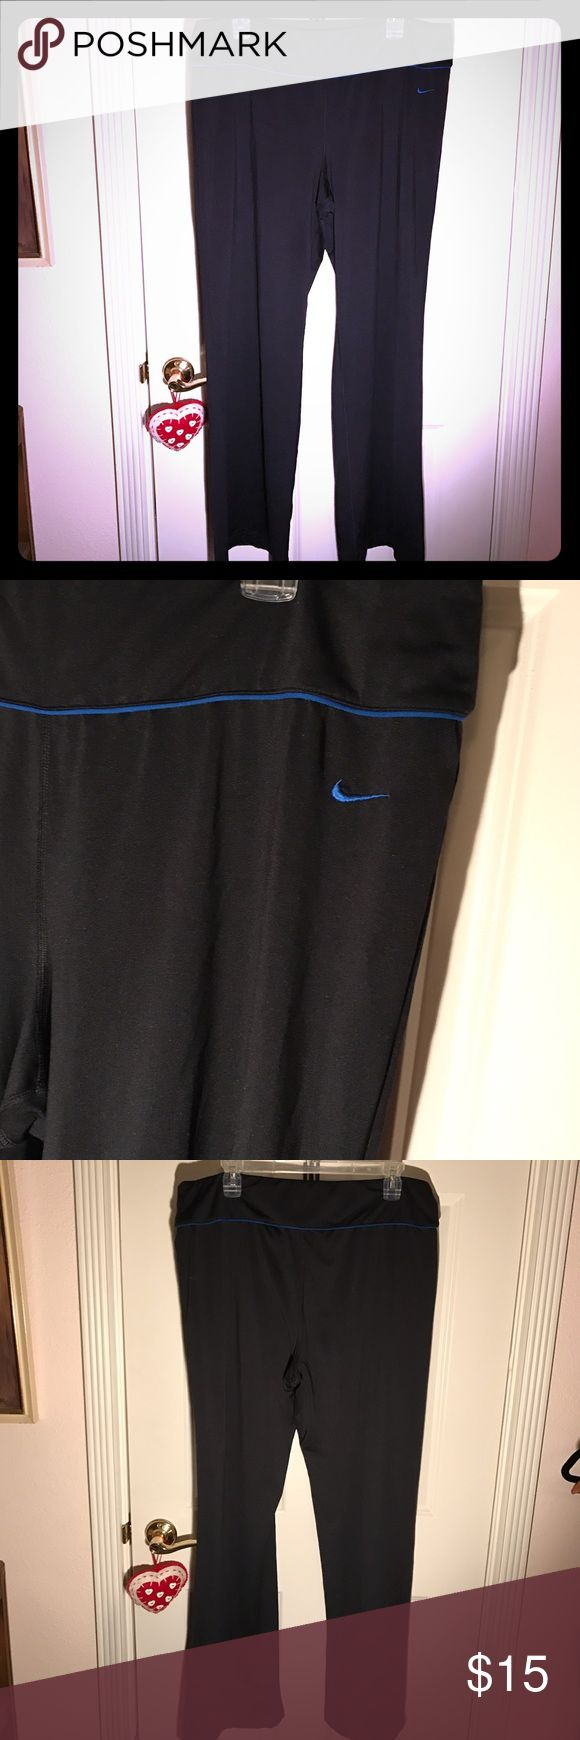 Nike yoga pants Great condition! Tiny bit of piling (pictured) everything else is perfect! They are either boot cut or flare, Happy poshing! Nike Pants Boot Cut & Flare